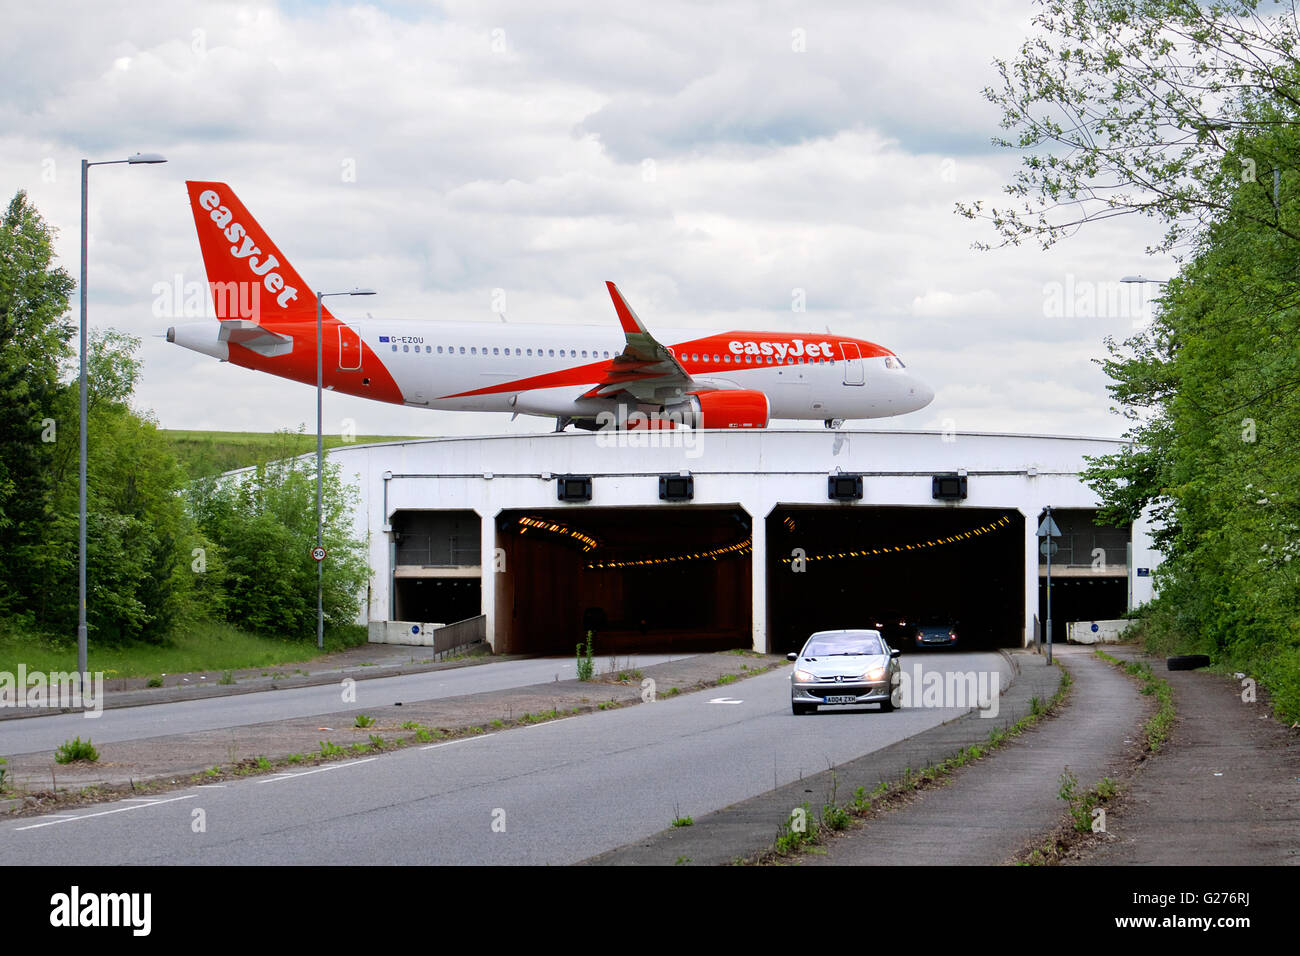 Easyjet plane taxiing over the A538 (Wilmslow Road) at Manchester's Ringway Airport, England - Stock Image